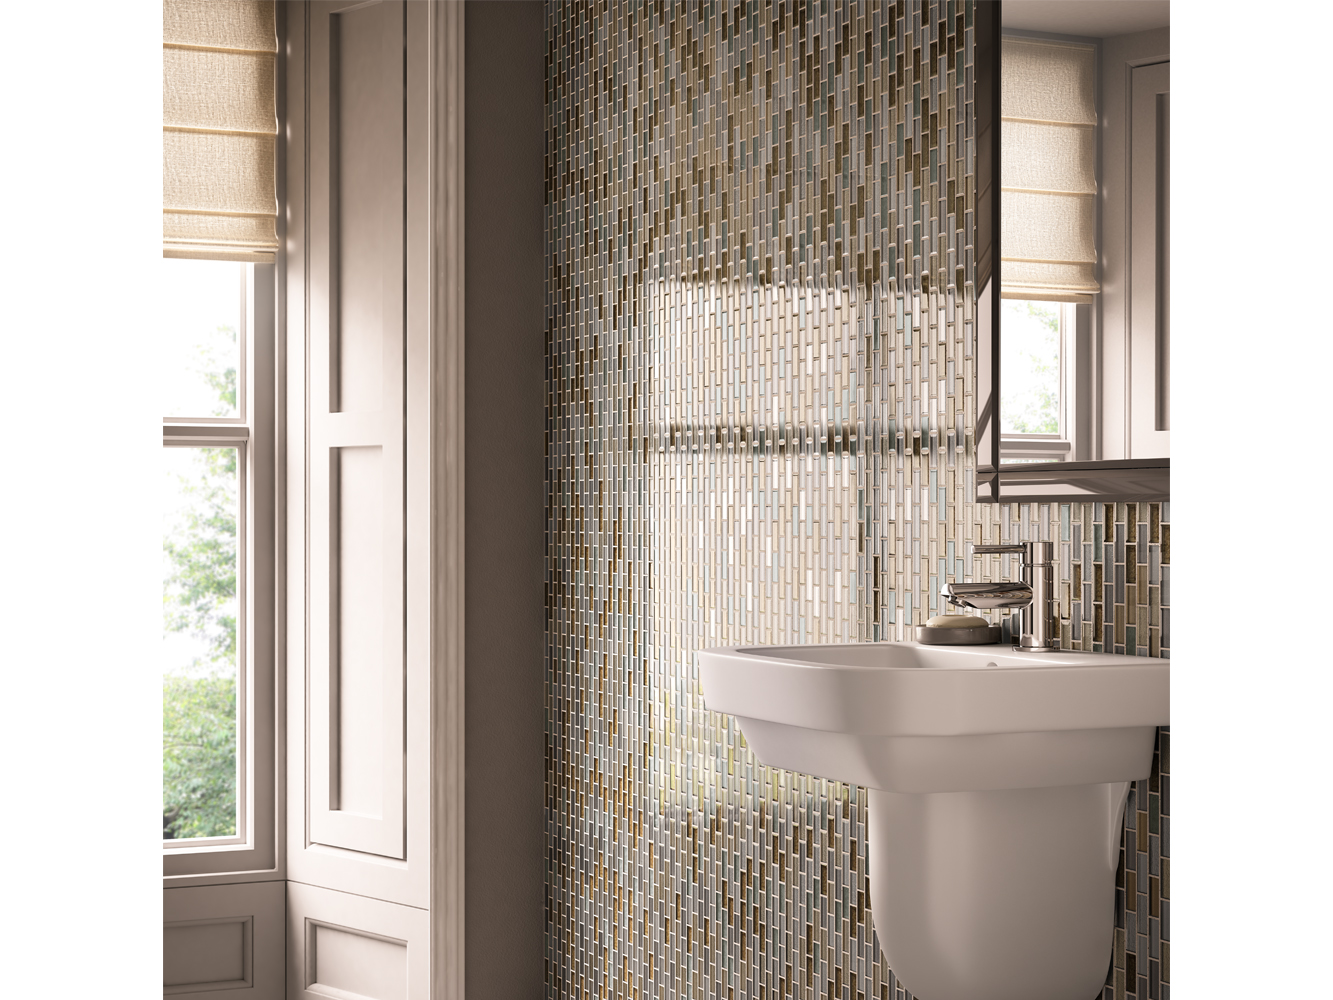 pix-us-cg-brown-mosaic-tile